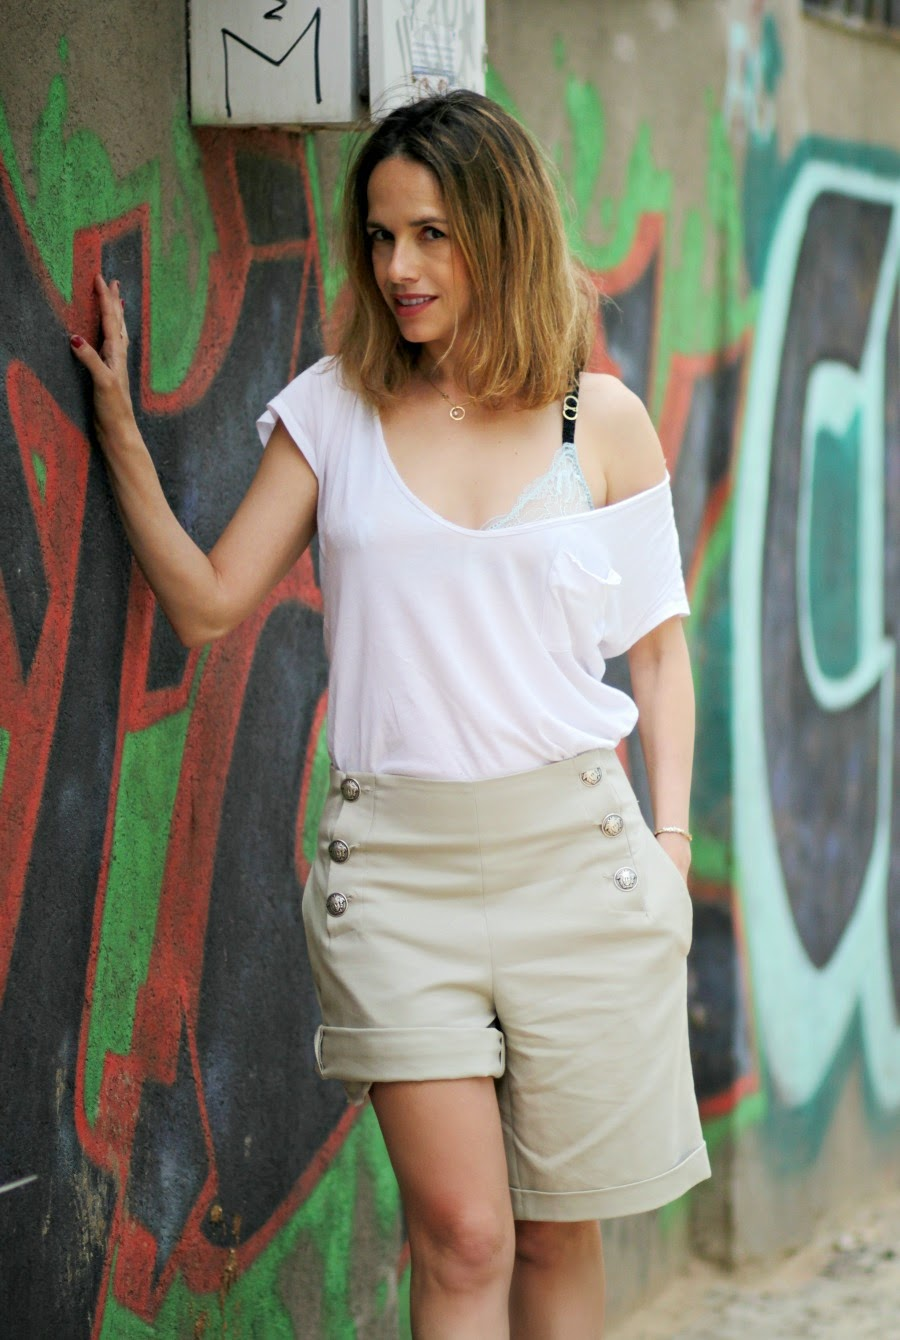 stellaMcCartney, ss15, ootd, widelegbuttonspants, fashionblog, fashion, אופנה, בלוגאופנה